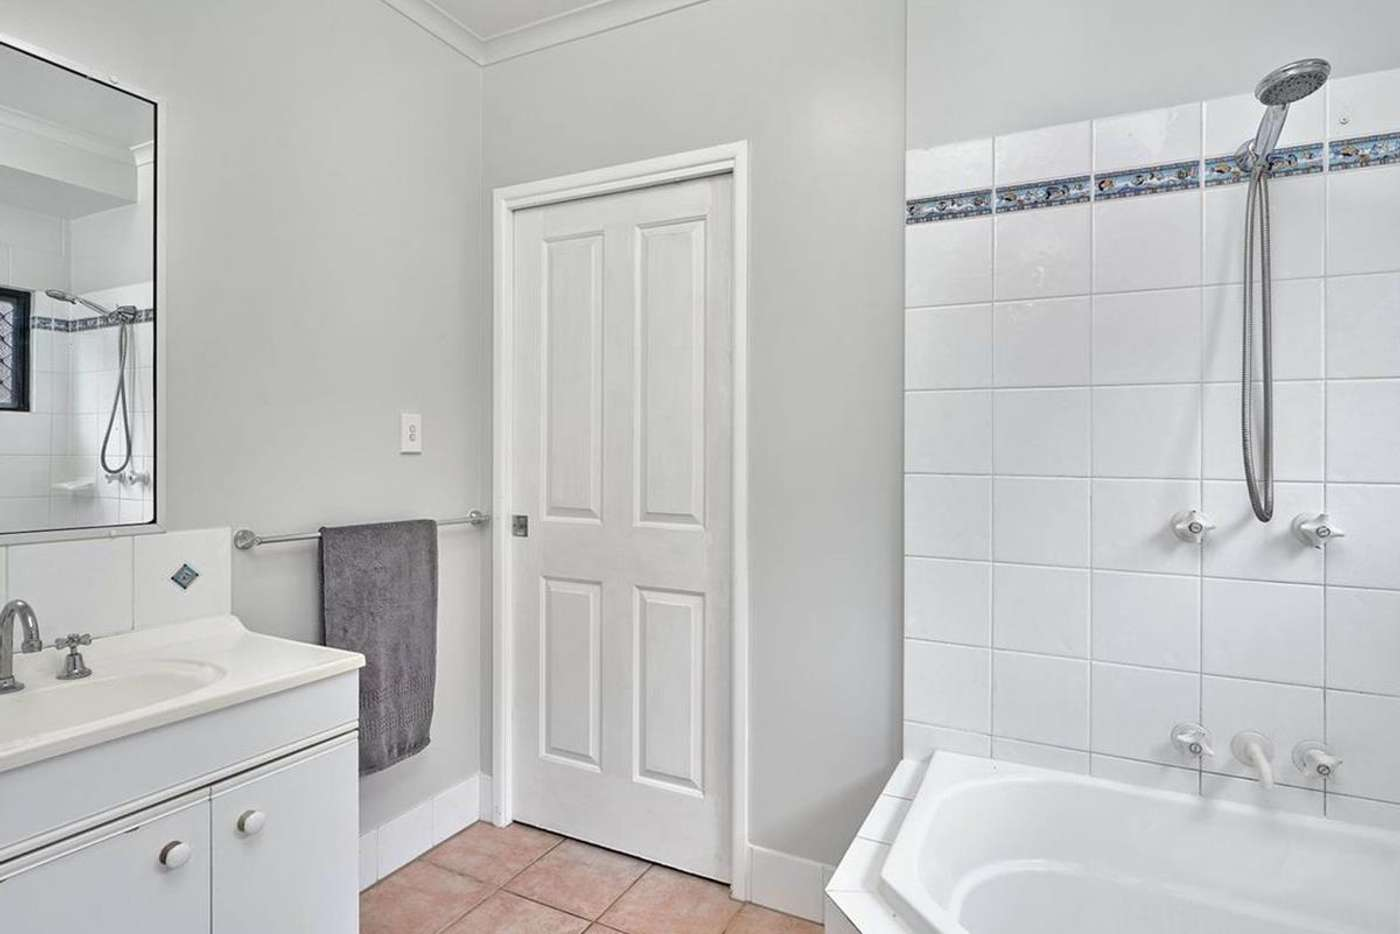 Seventh view of Homely house listing, 9 Caneland Court, Redlynch QLD 4870